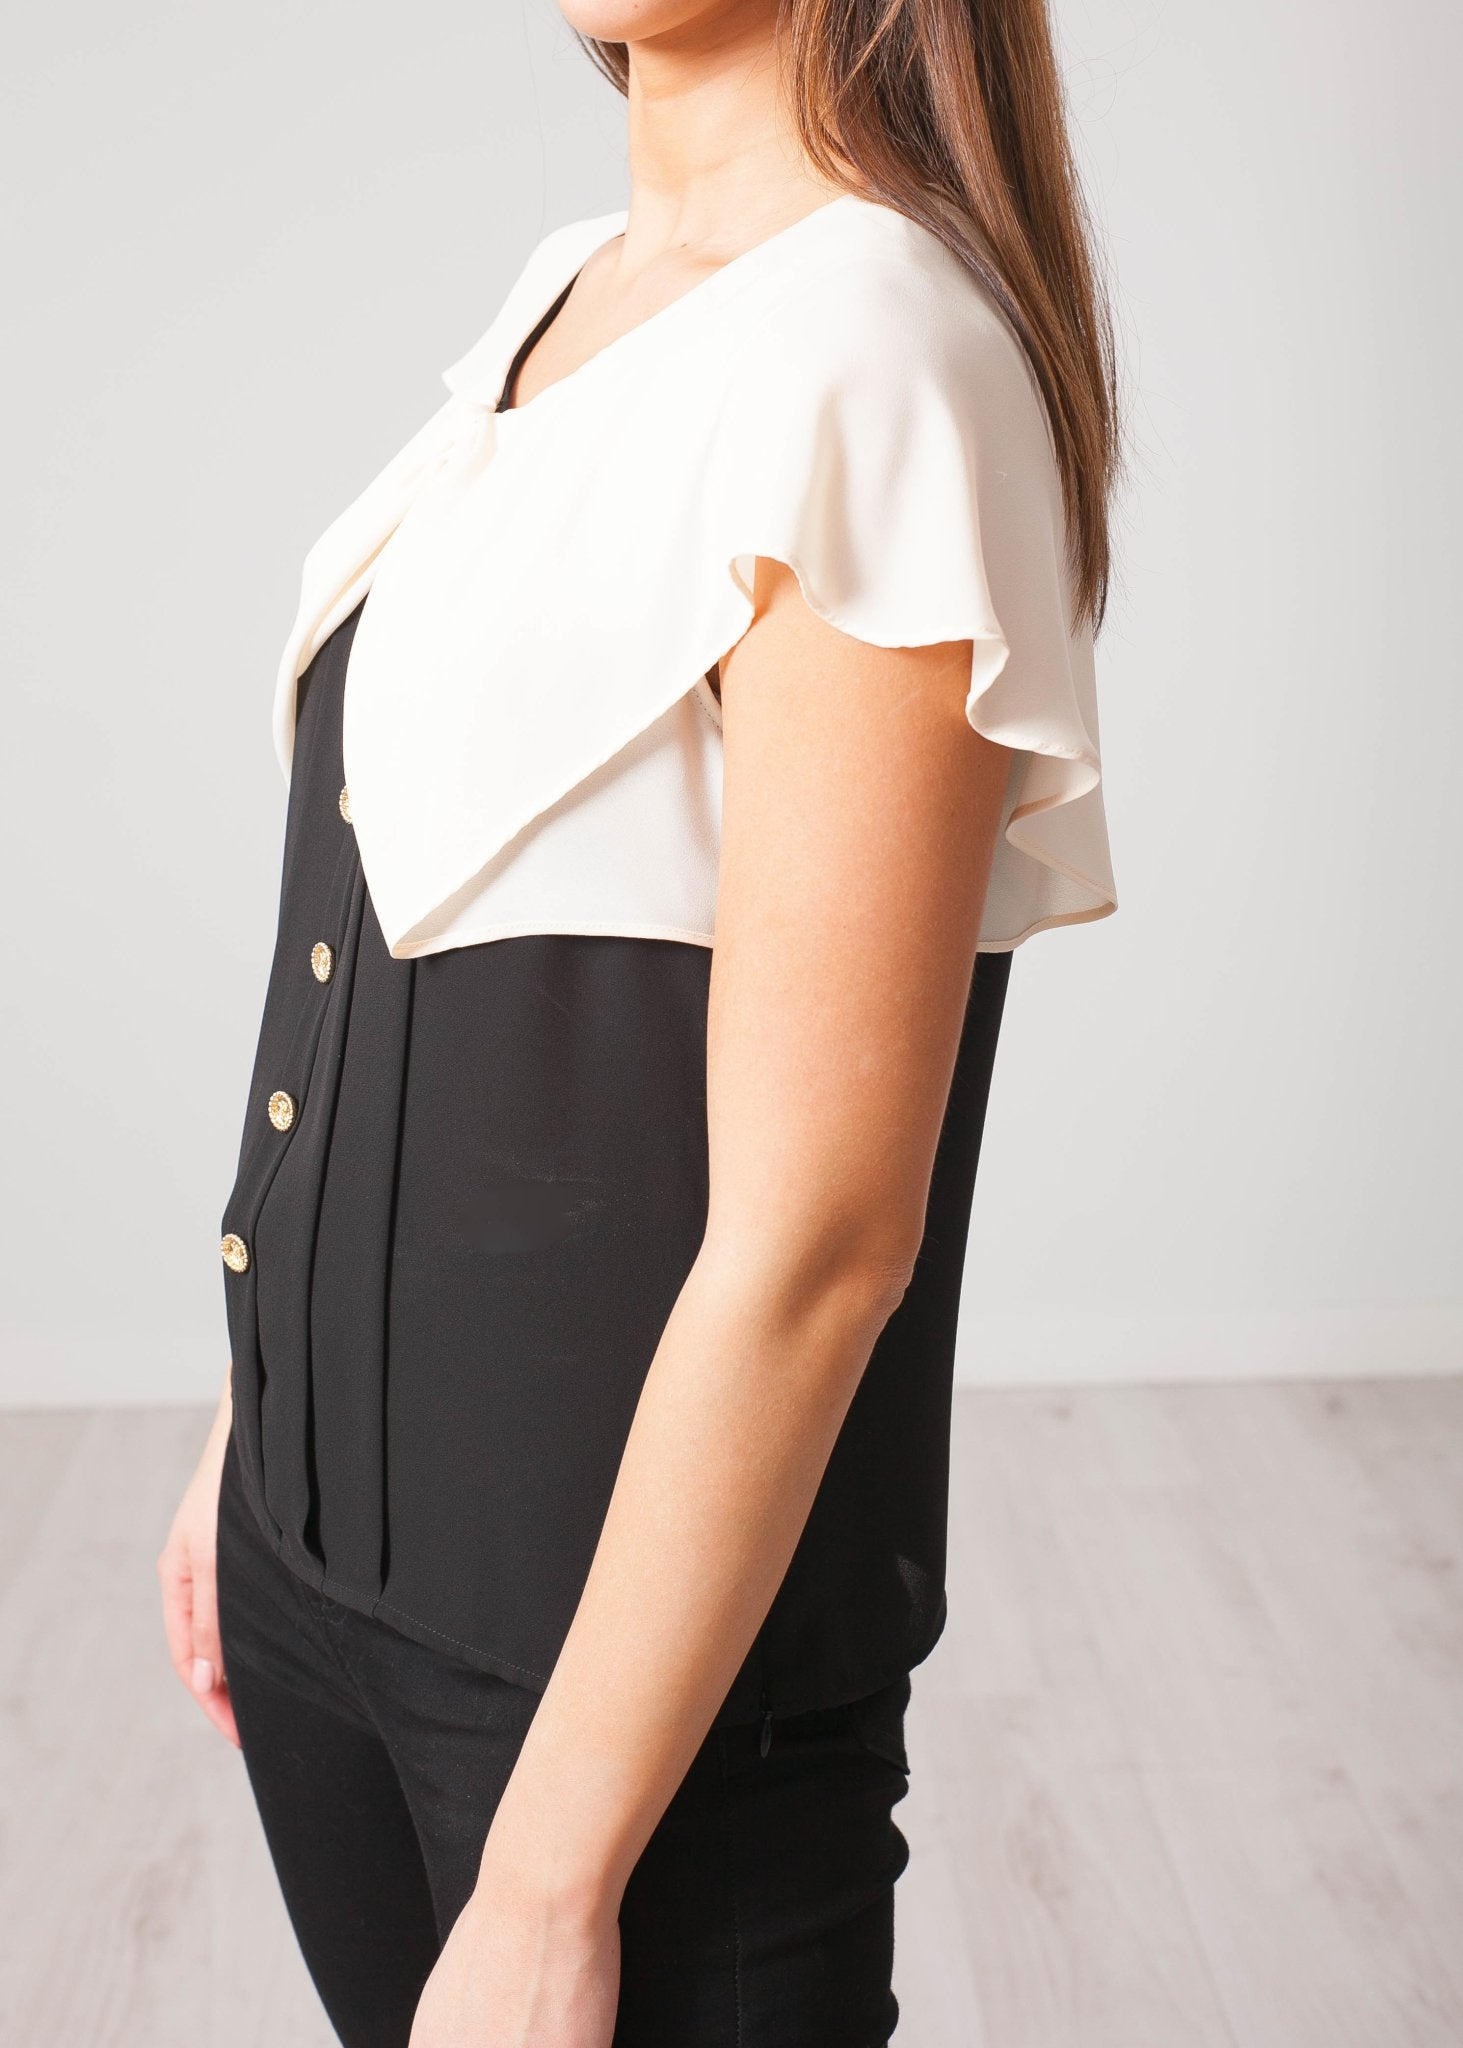 Aliyah Cream & Black Blouse - The Walk in Wardrobe